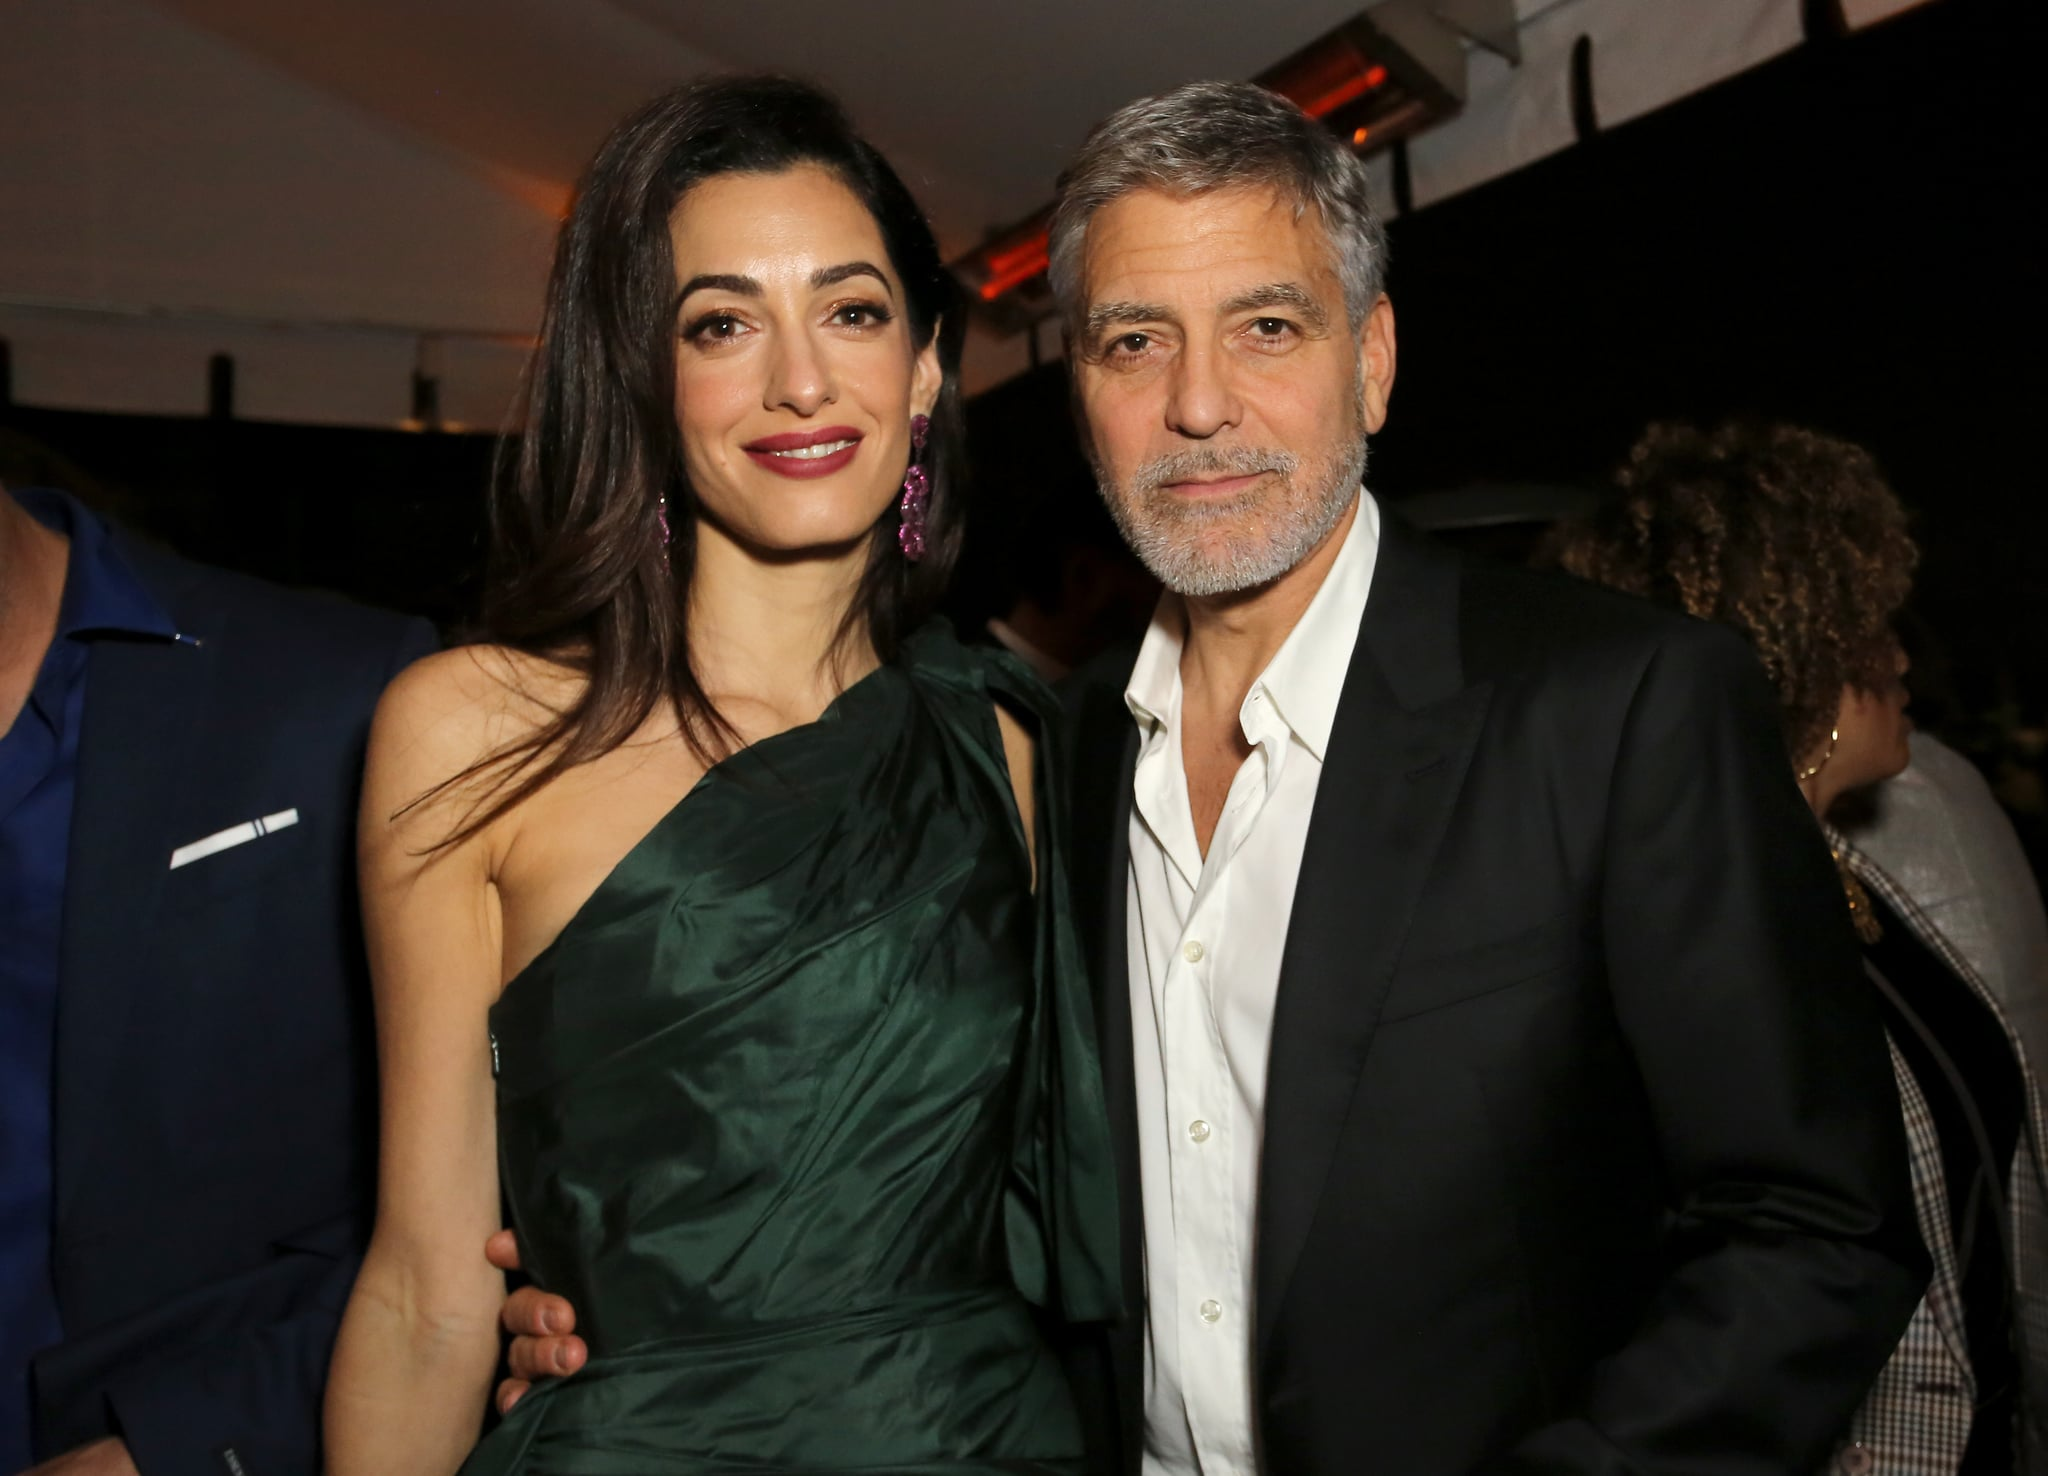 HOLLYWOOD, CALIFORNIA - MAY 07: (L-R) Amal Clooney and George Clooney attends the premiere of Hulu's